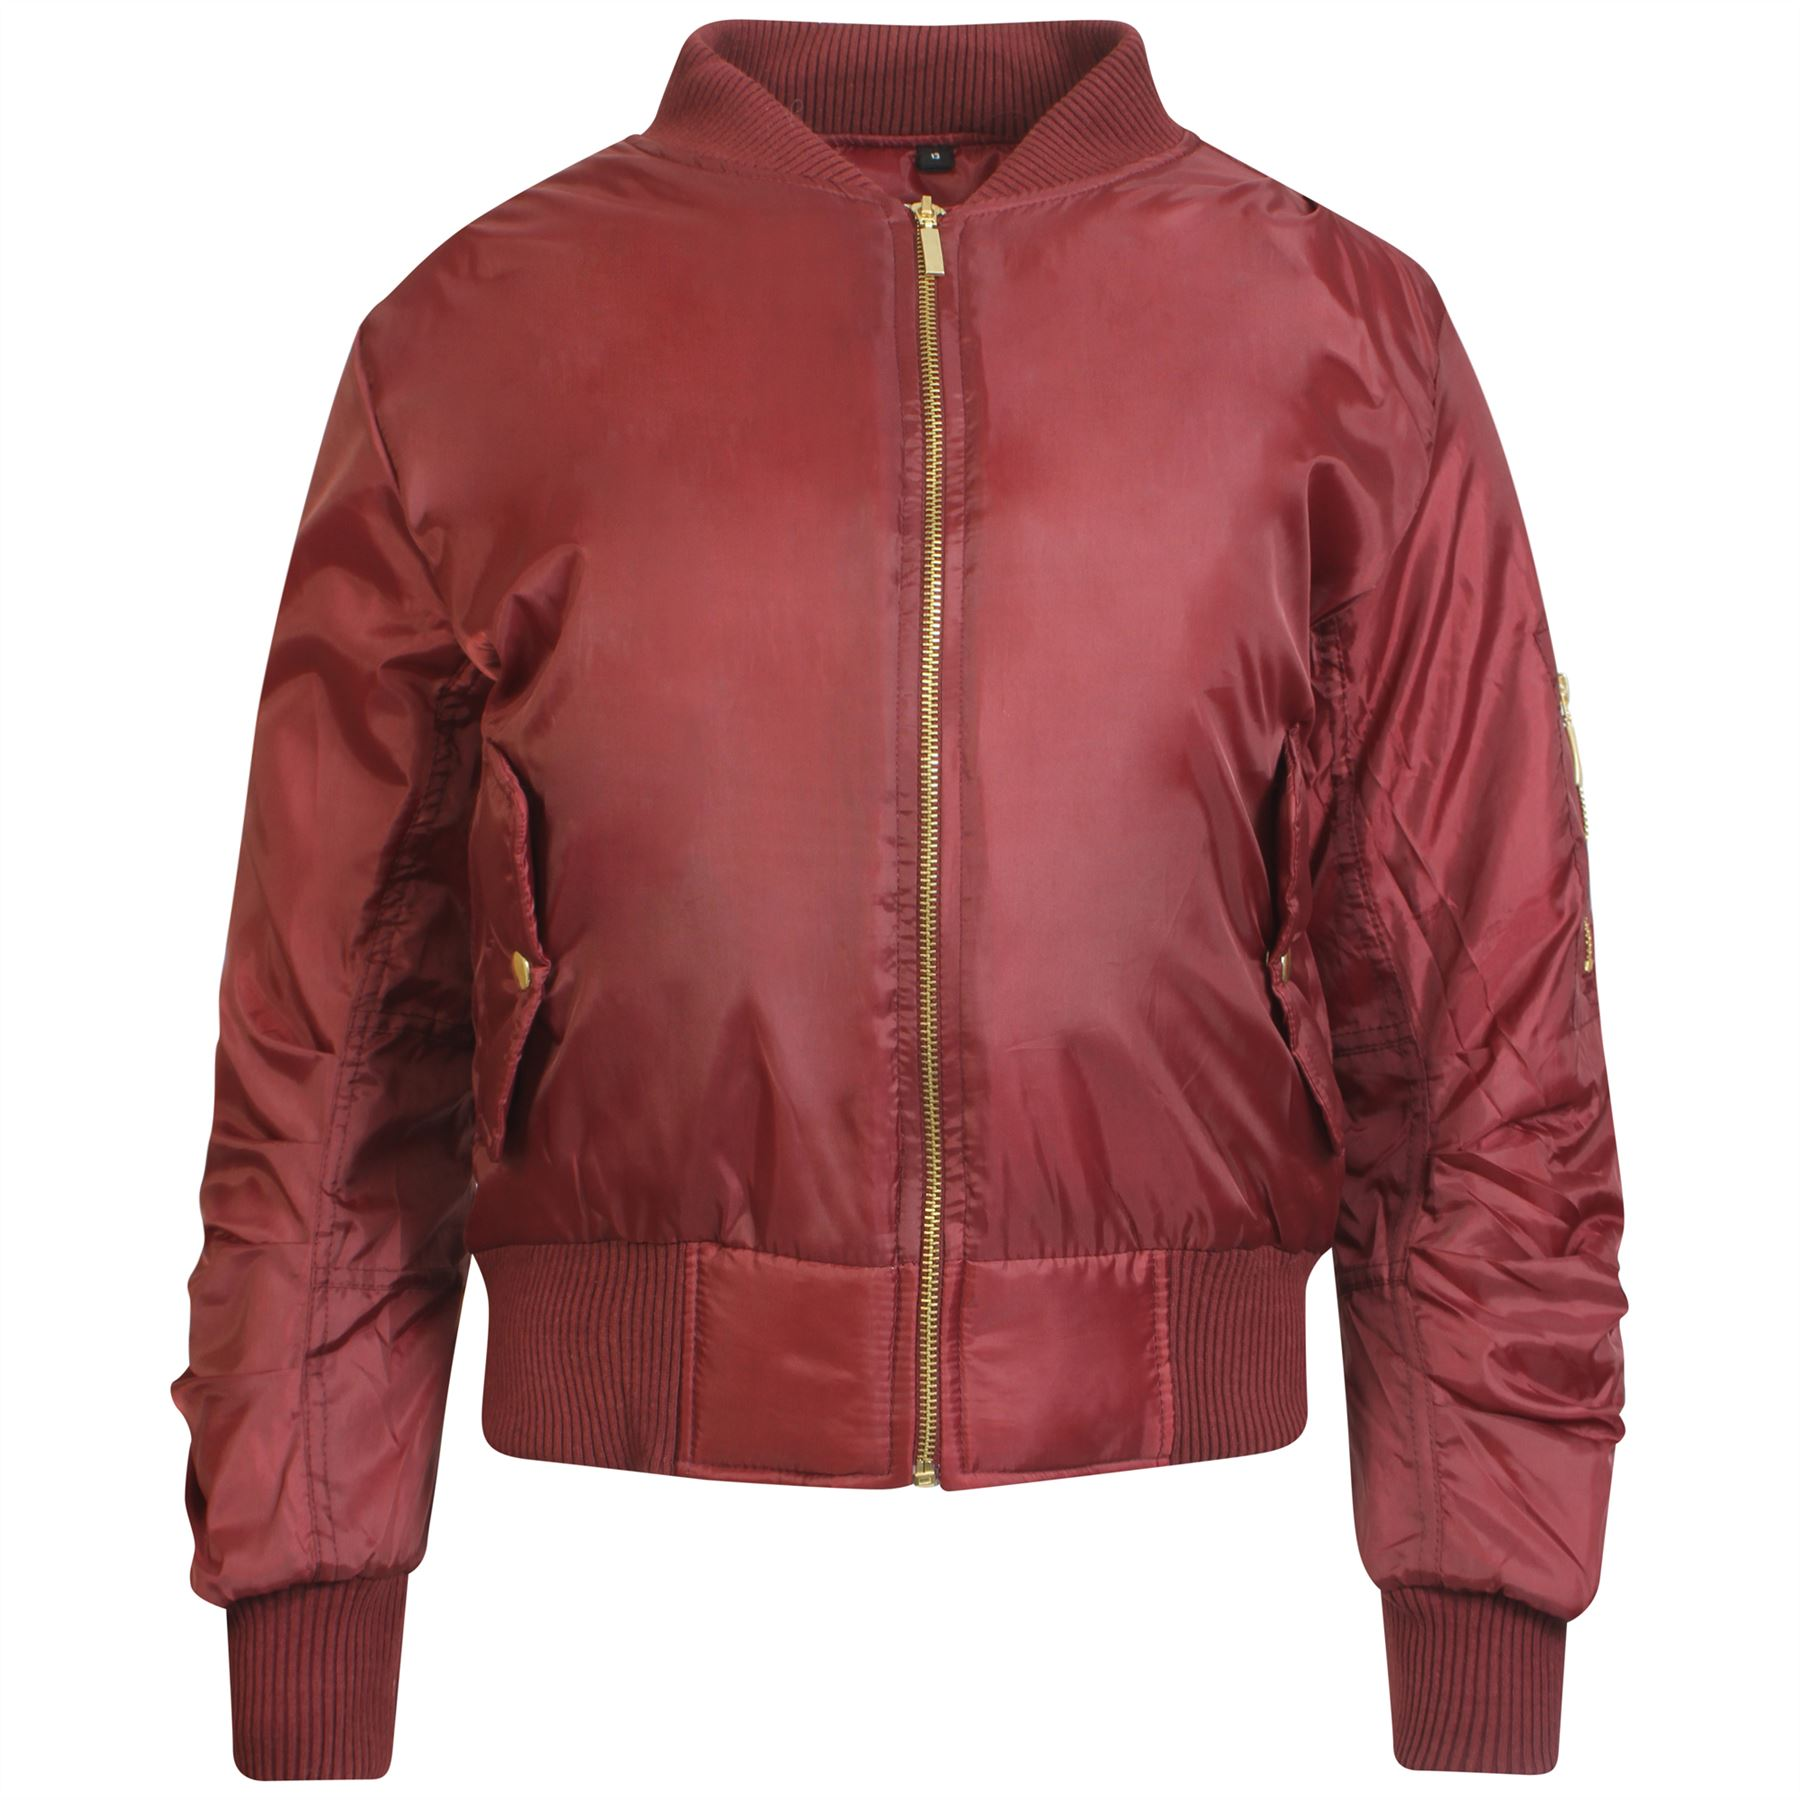 Find great deals on eBay for kids aviator jacket. Shop with confidence.